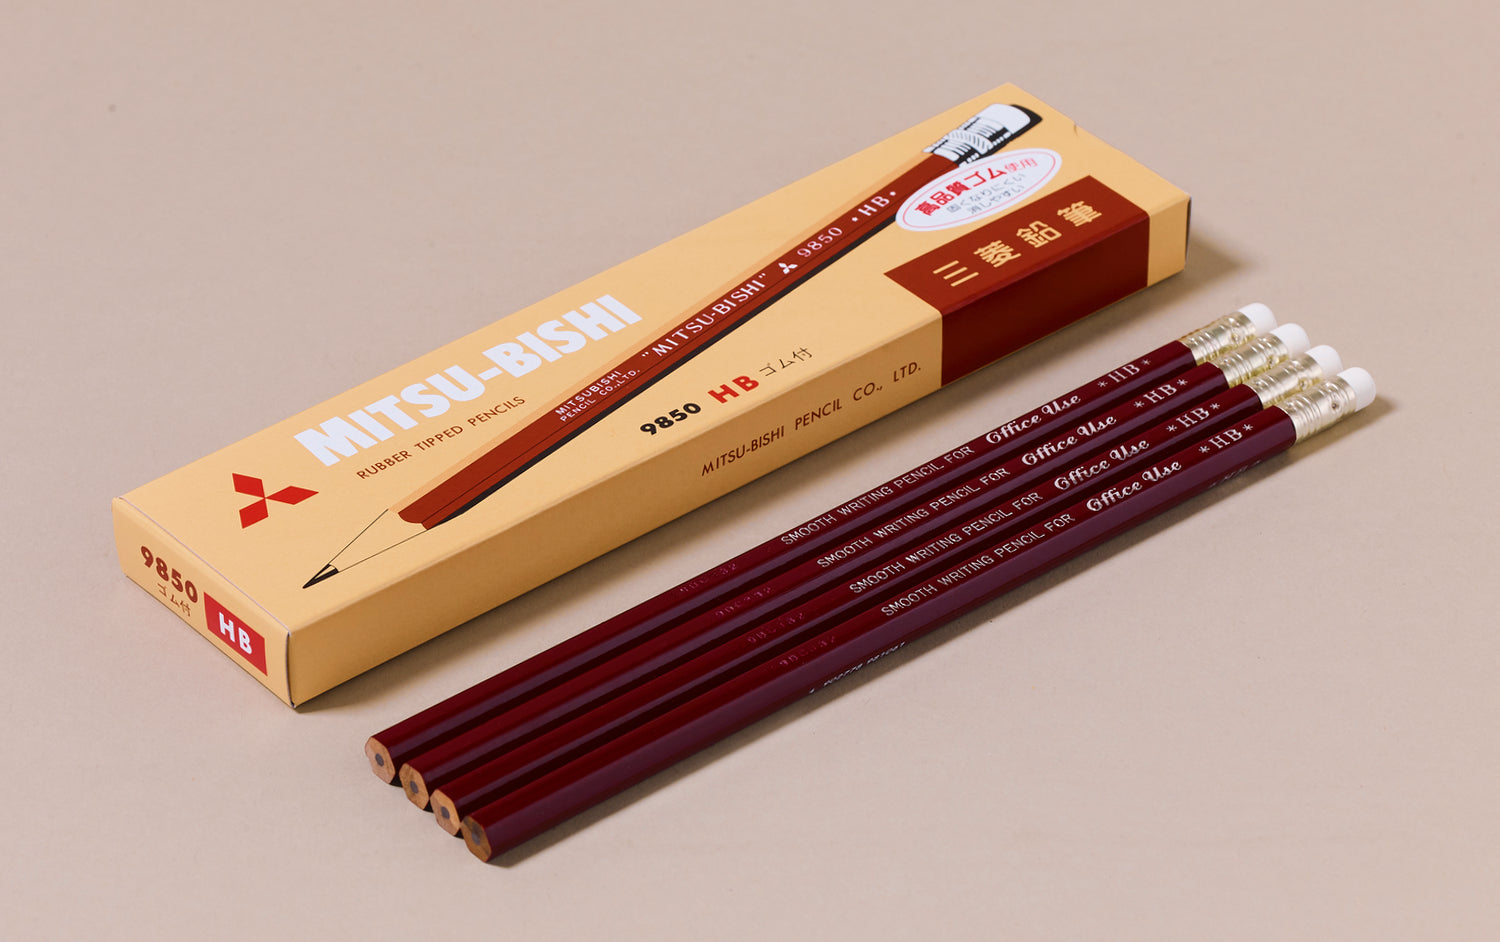 HB Mitsubishi 9850 Tipped Pencils